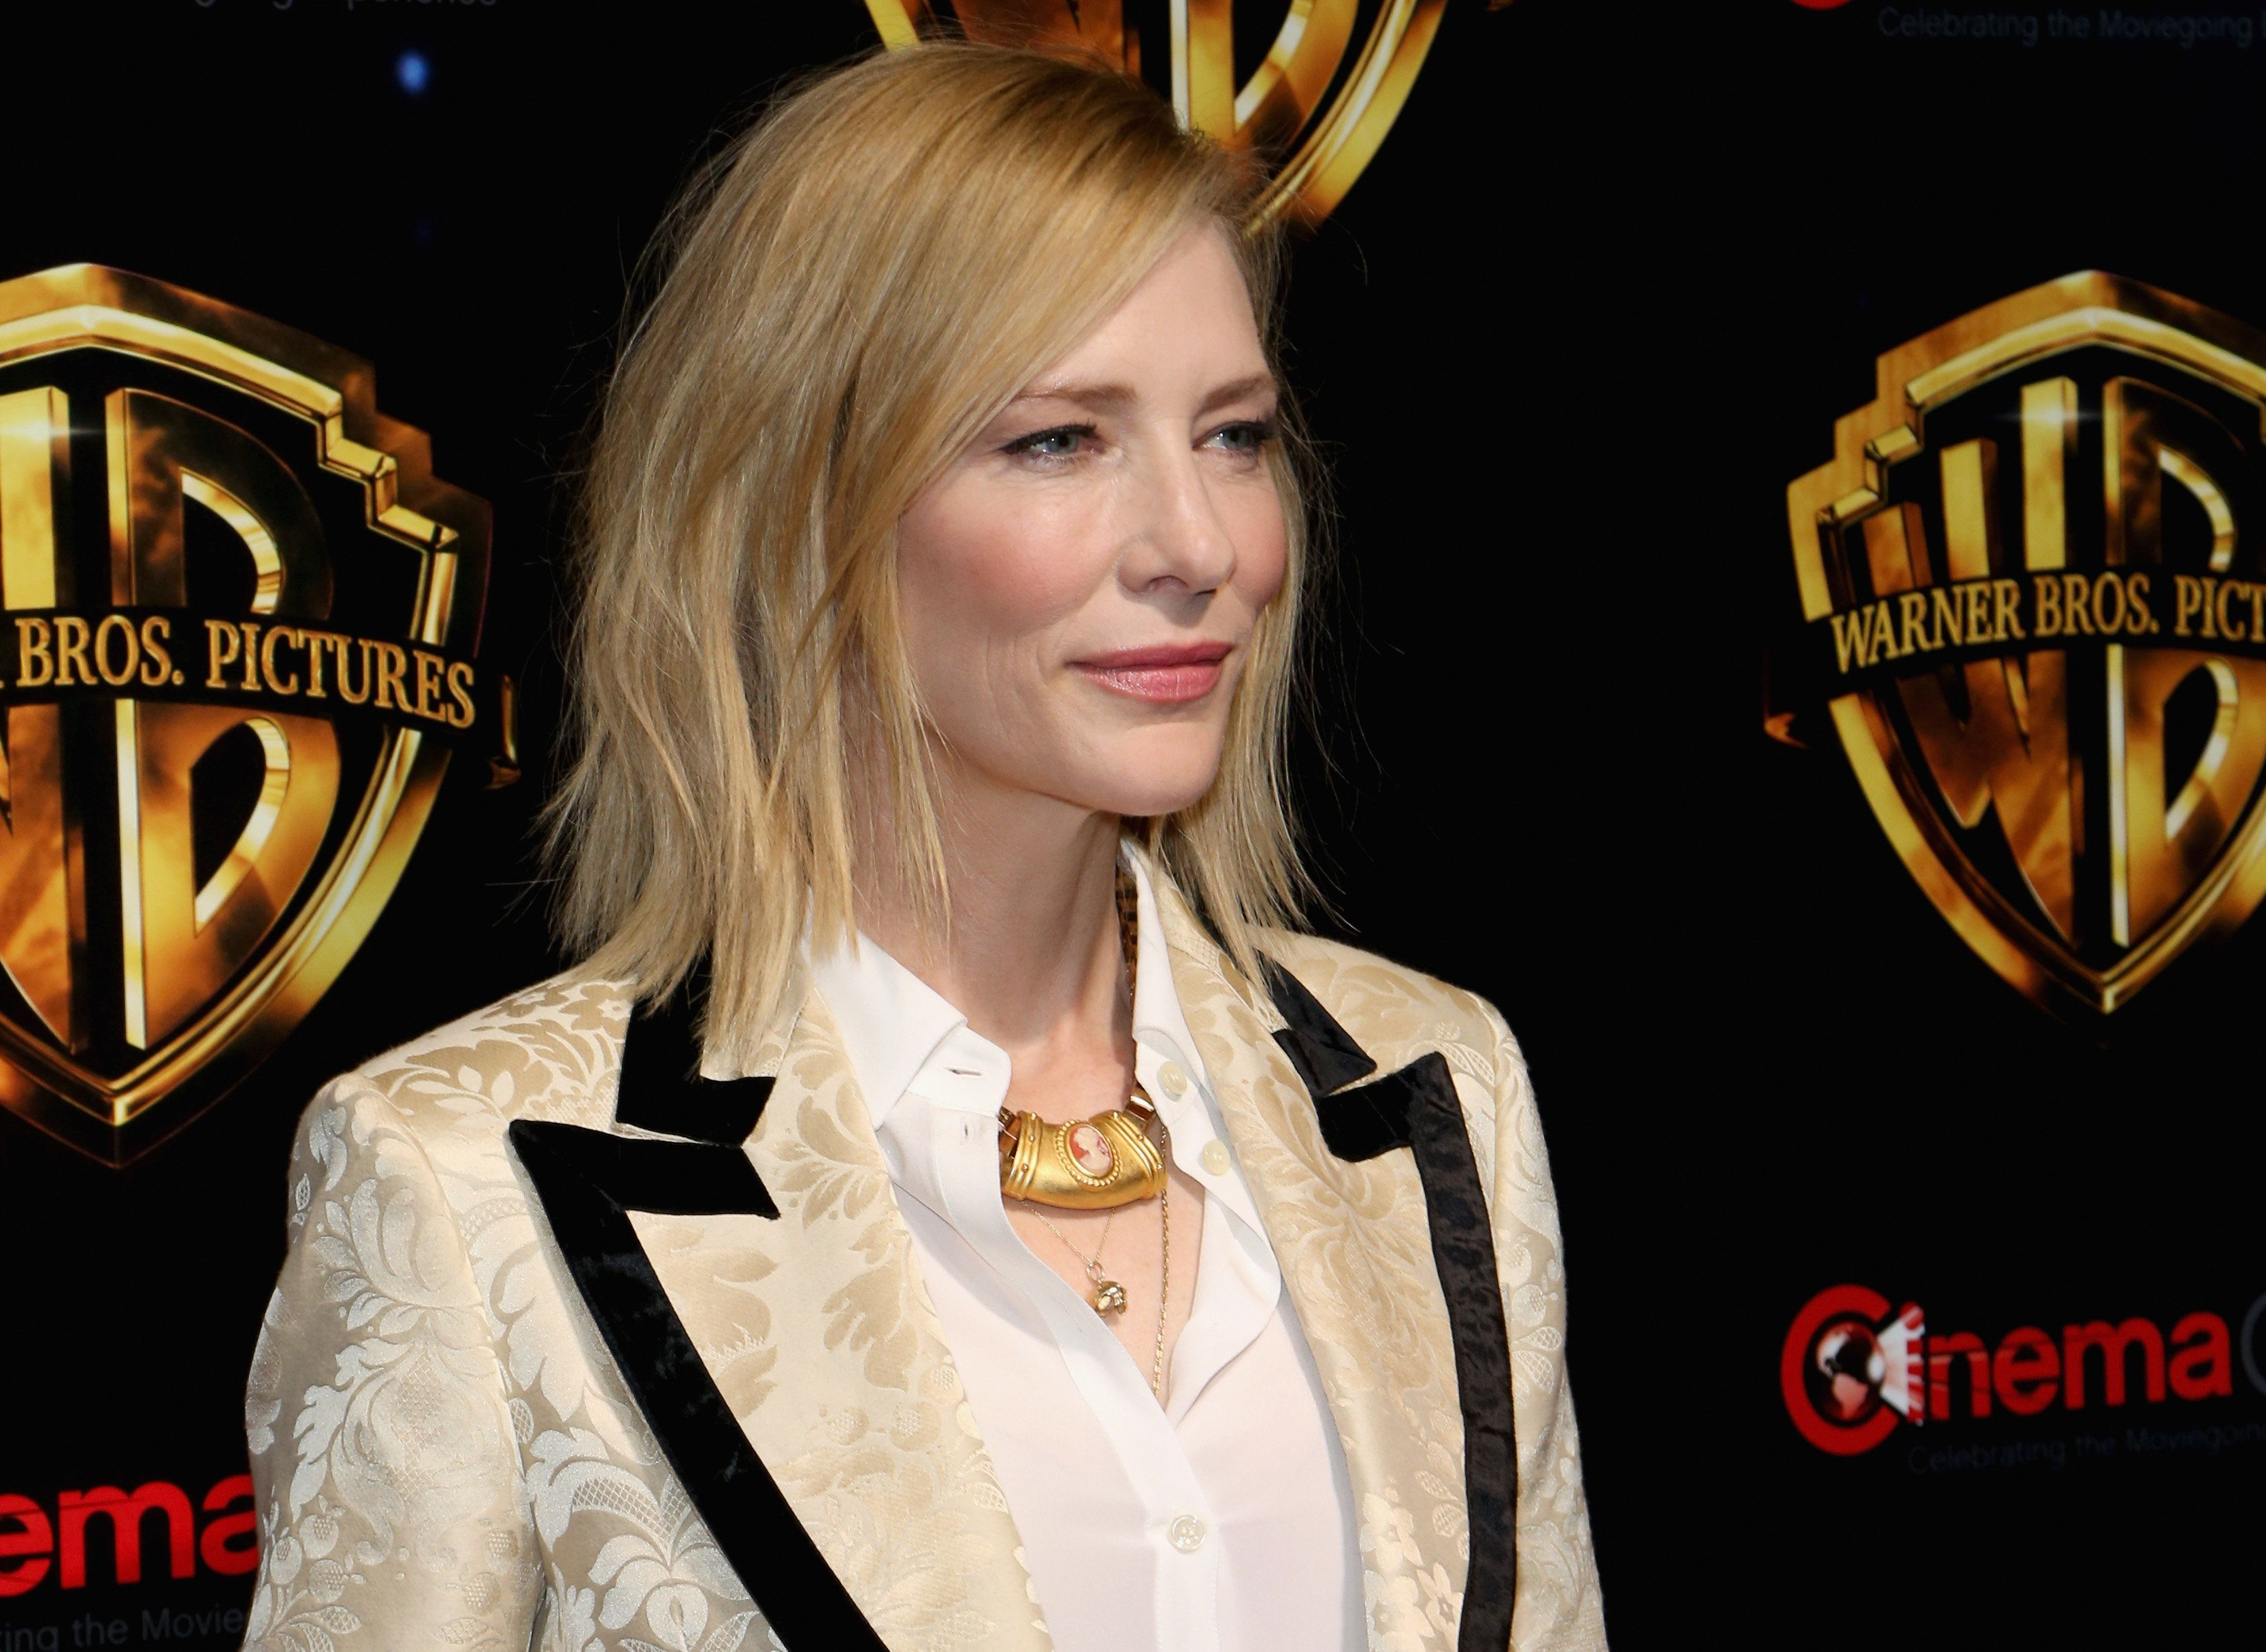 Cate Blanchett Says Harvey Weinstein Acted Inappropriately Towards Her And Hopes He Goes To Jail